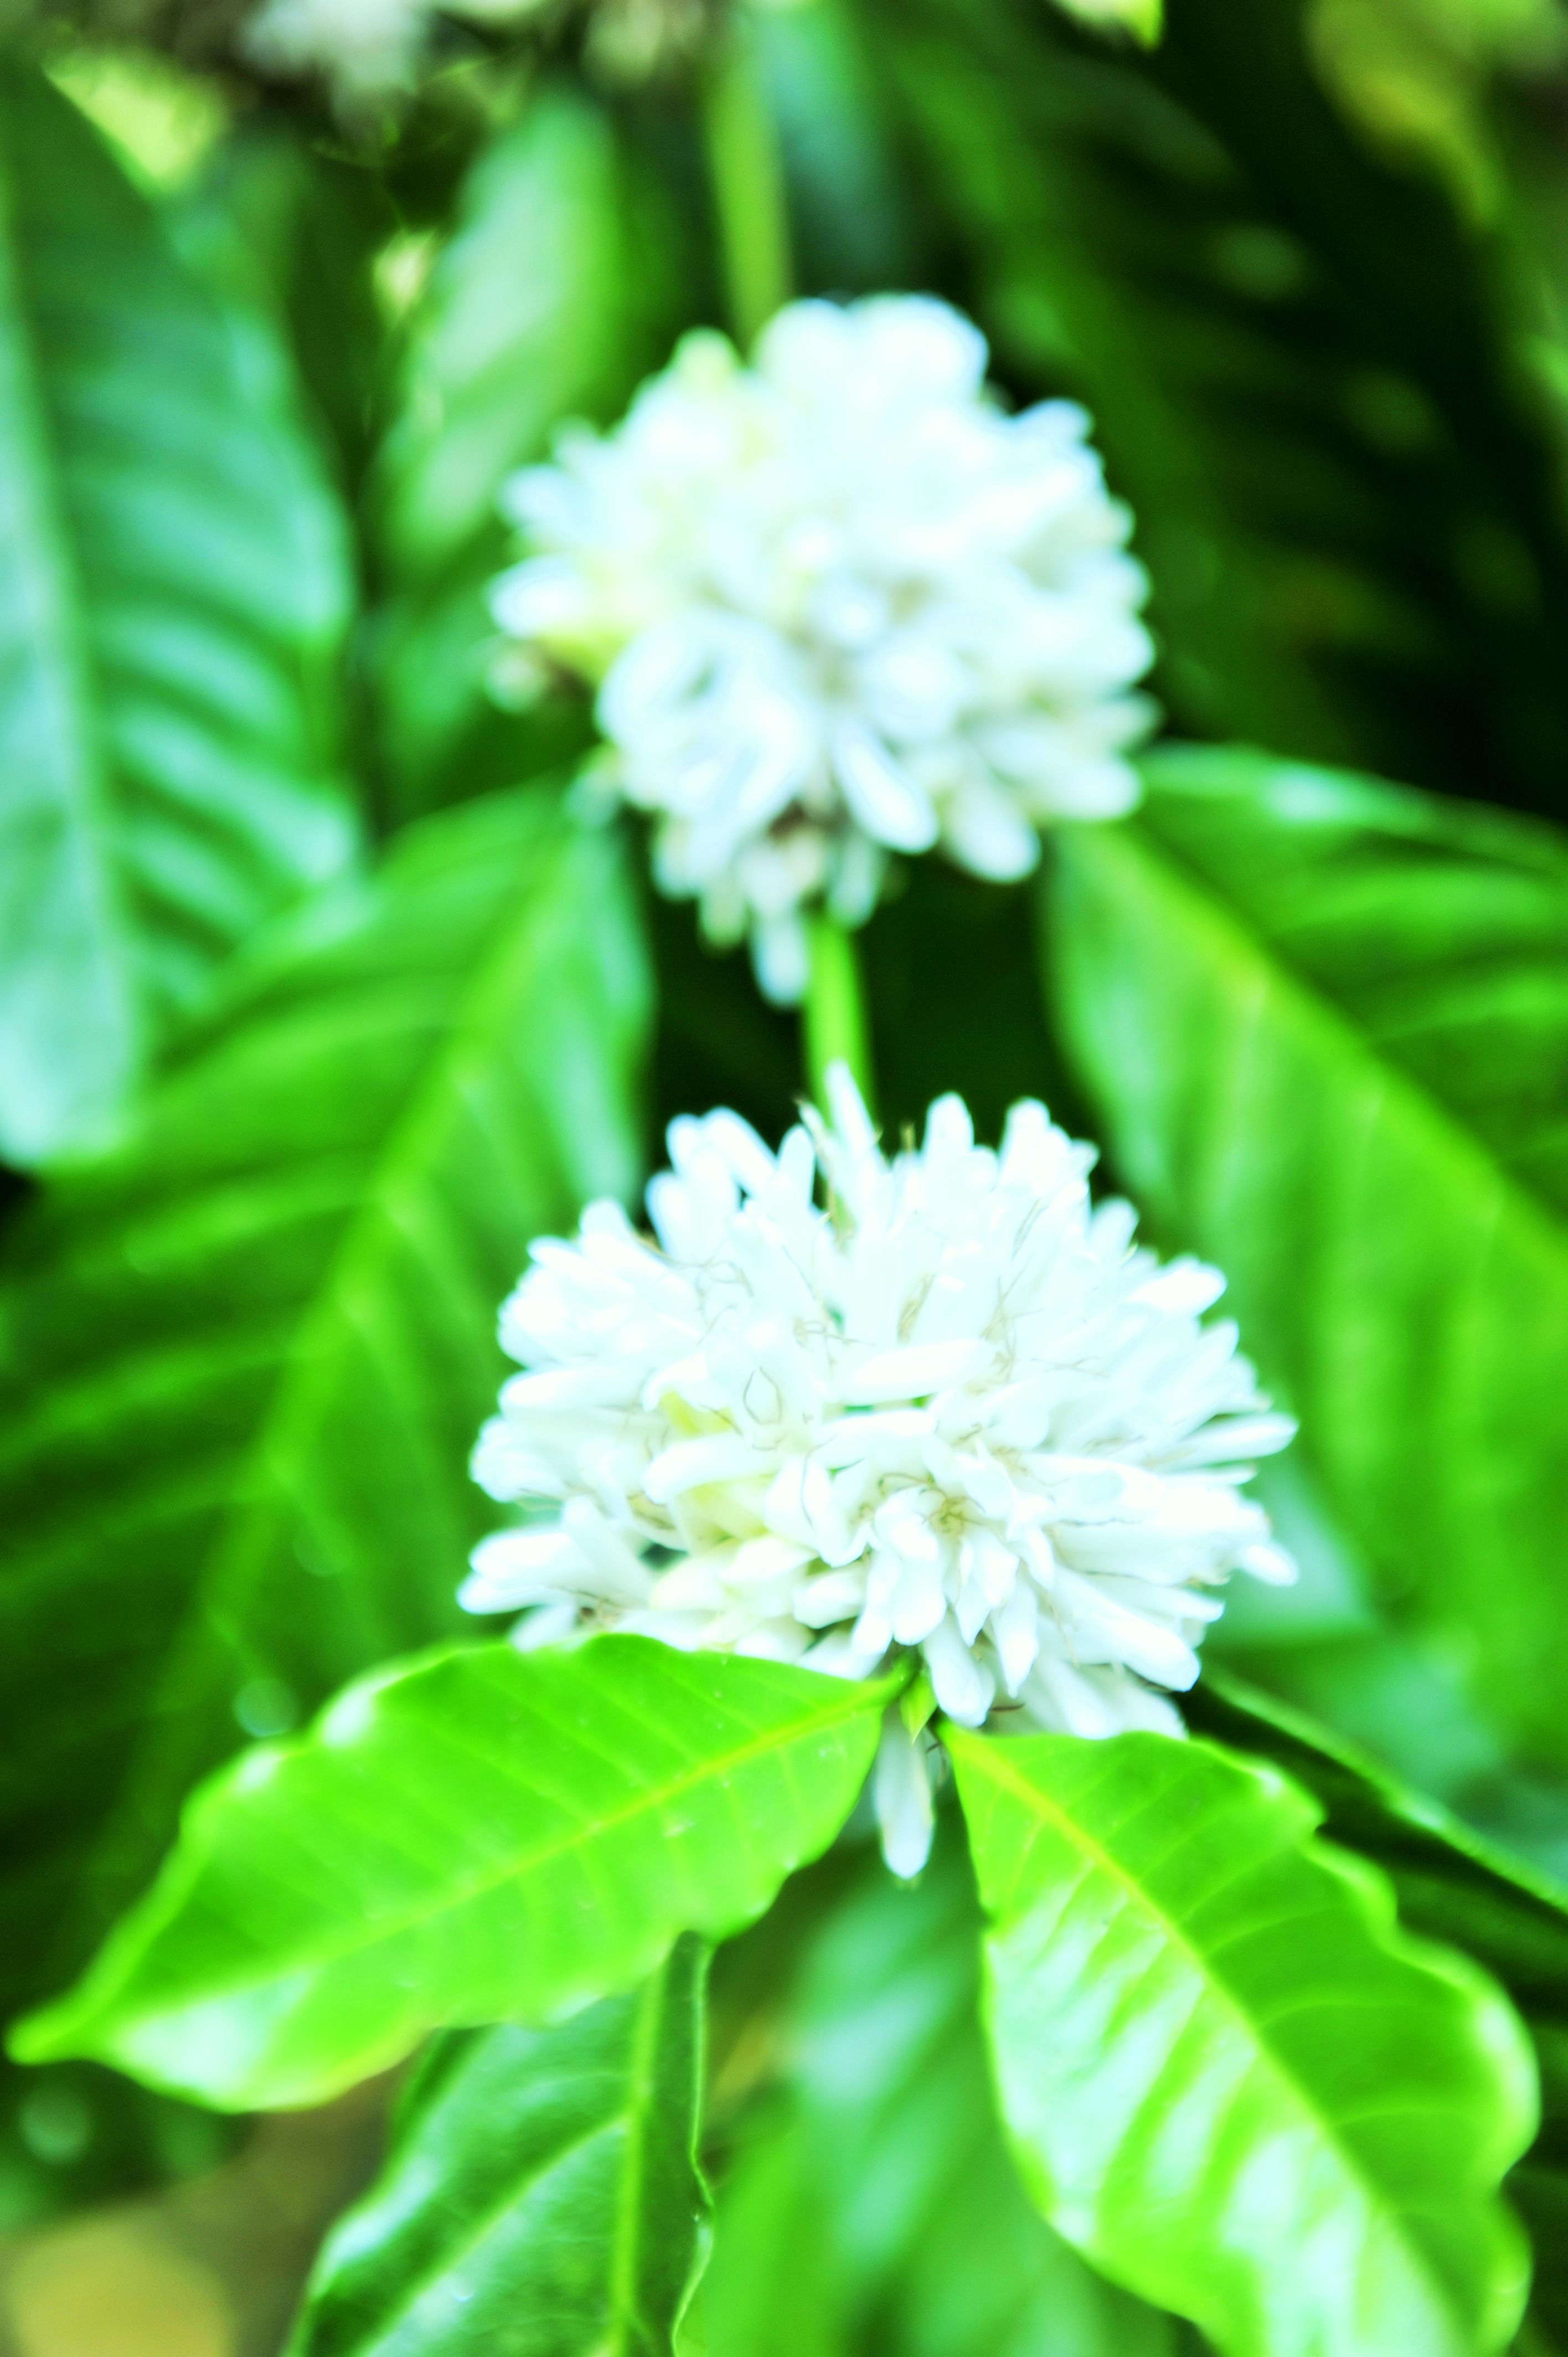 Coffee Blossoms ~ comes every year, stays only over a week and then metamorphose to Coffee beans thereafter, these magical flowers carpets entire Coorg like snowfall and smells like jasmine. #coorgcoffee, #holidayincoorg # Resort in Coorg http://www.meriyanda.com/